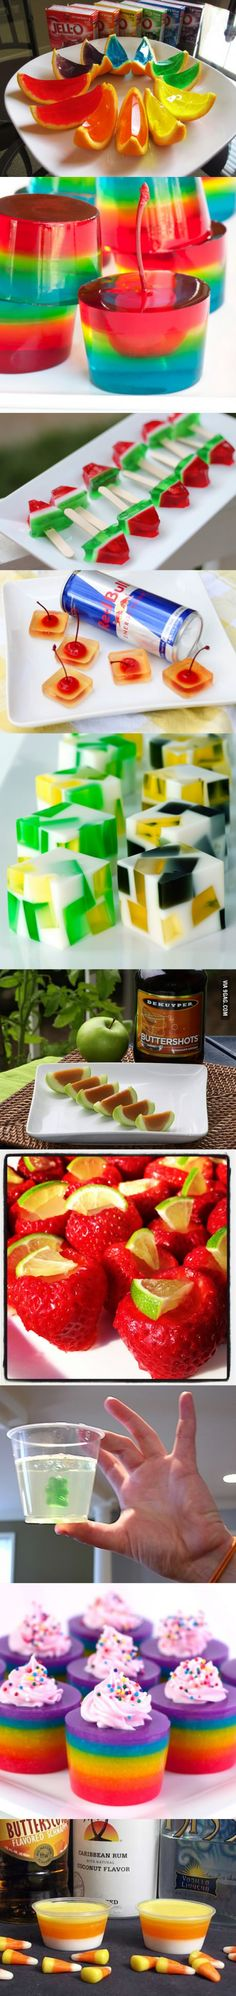 10 different ways to do jello shots, this is amazing. Oh boy Melissa, a jello shot for every occasion! Snacks Für Party, Party Drinks, Cocktail Drinks, Fun Drinks, Yummy Drinks, Yummy Food, Holiday Cocktails, Party Favors, Jello Shots